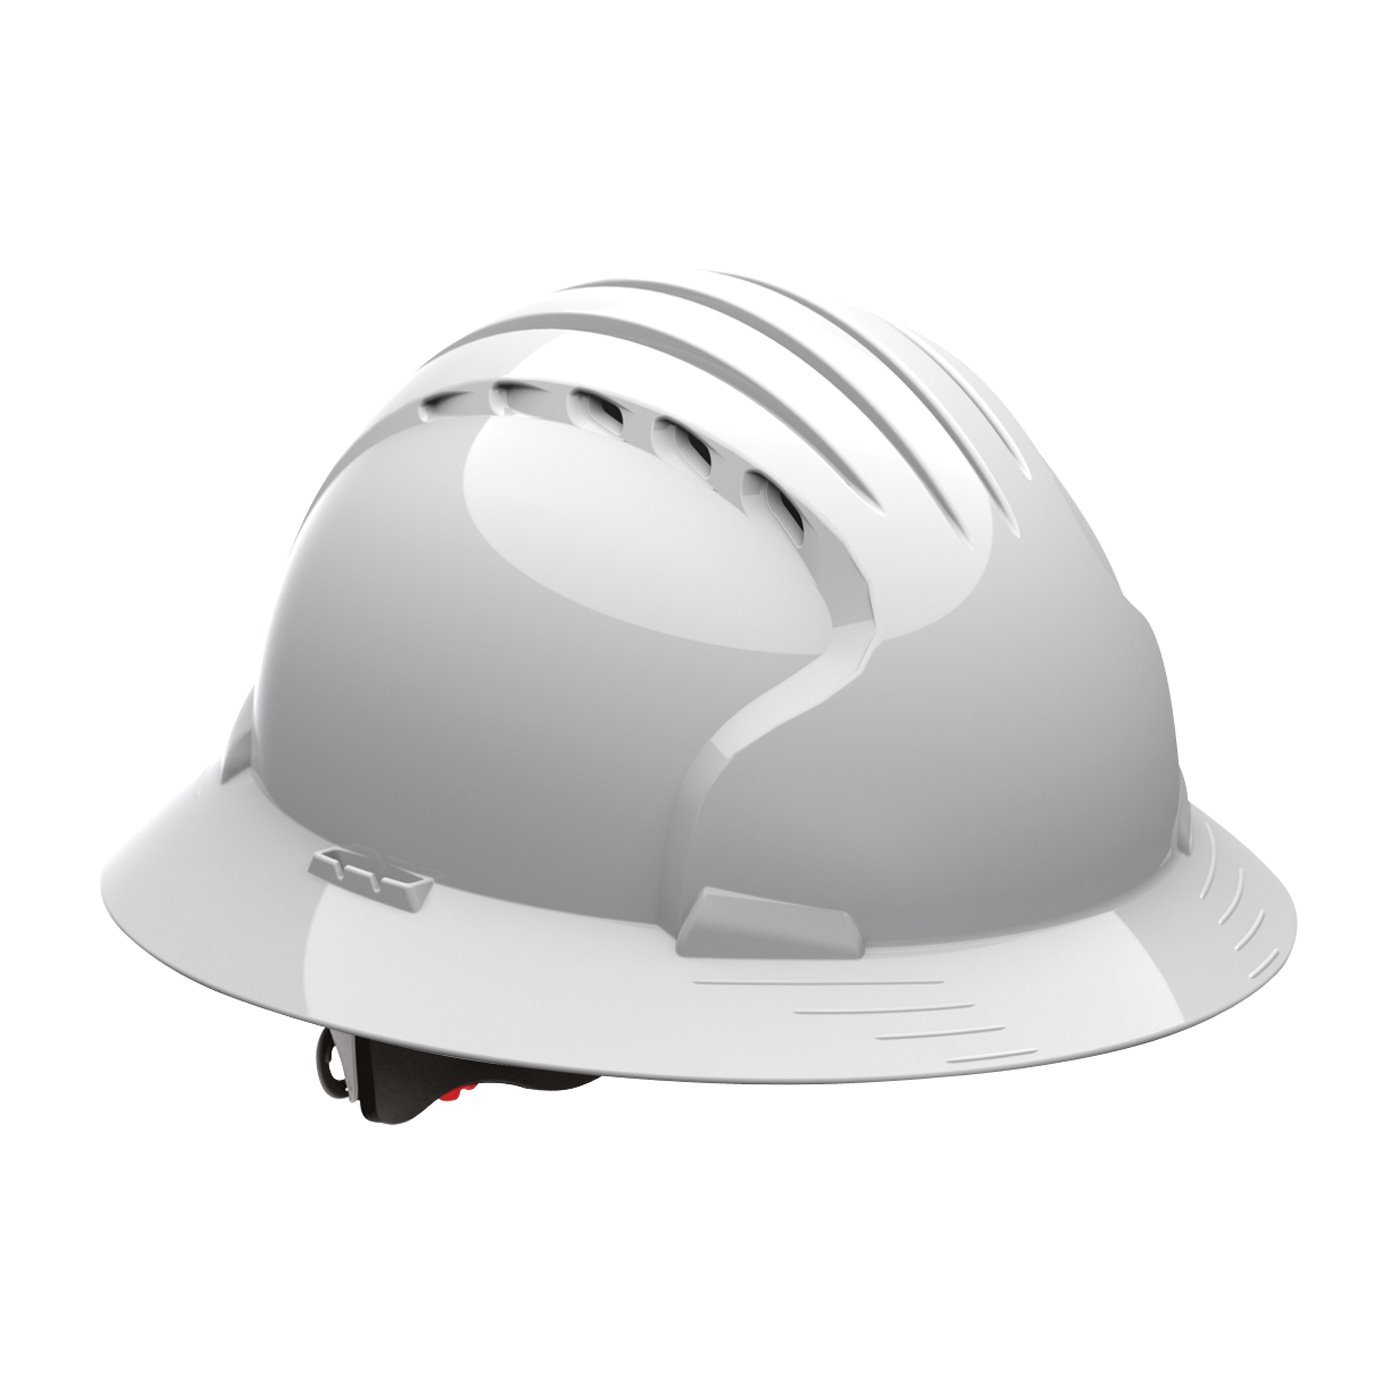 Evolution Deluxe 6161 280-EV6161-10V Full Brim Hard Hat with HDPE Shell, 6-Point Polyester Suspension and Wheel Ratchet Adjustment Vented, White by Evolution Deluxe 6161